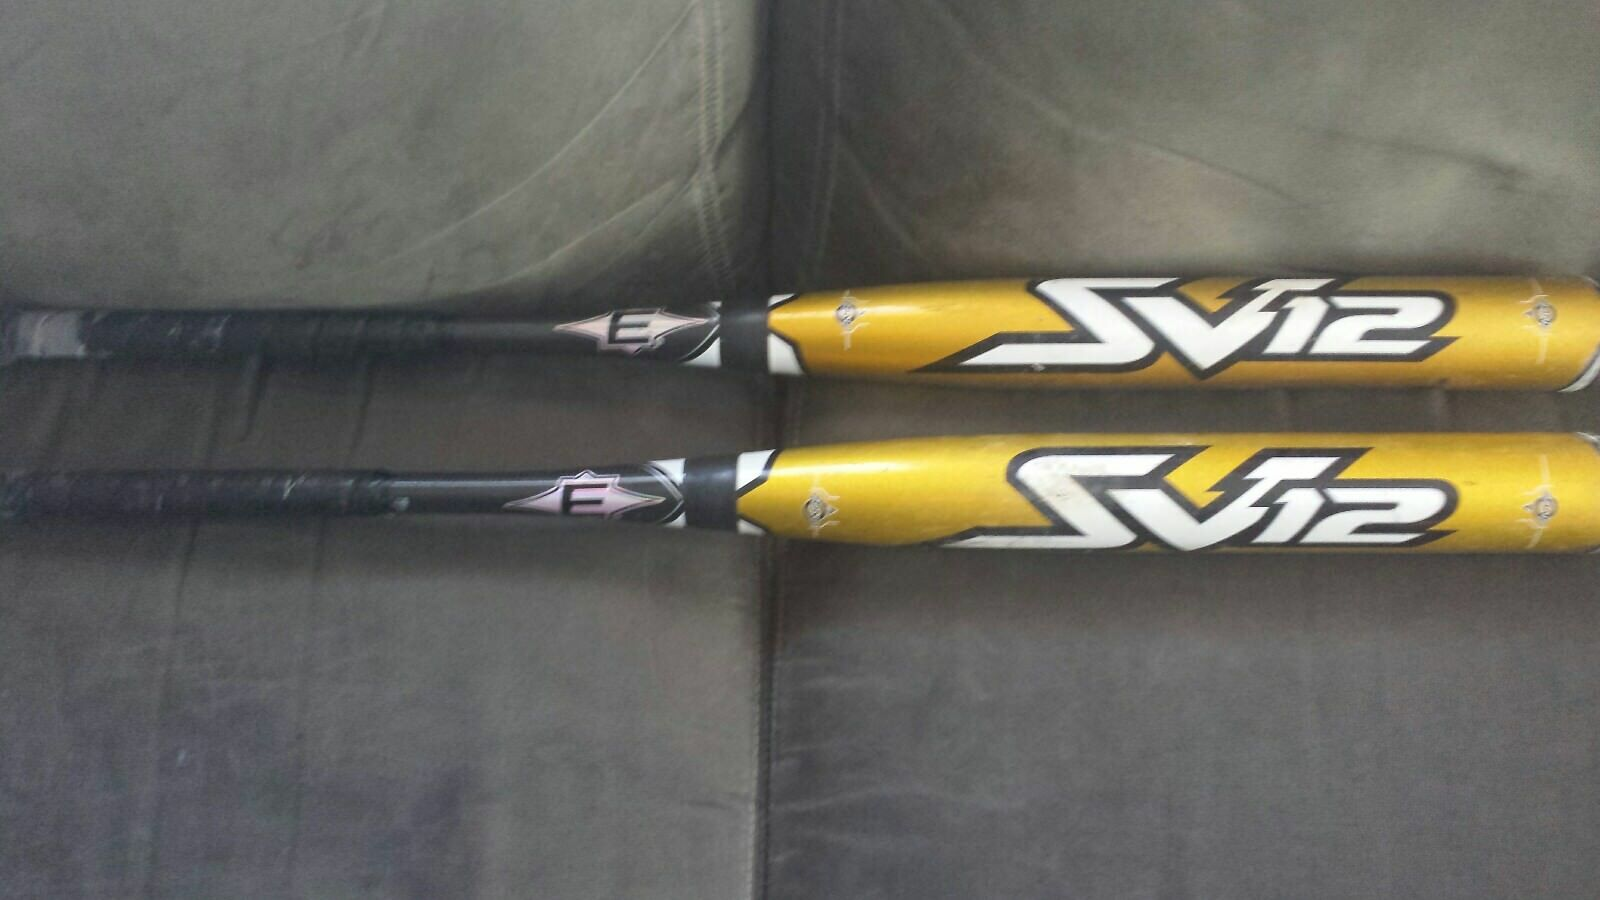 Easton SV12 softball bat  34  weight  26 or 28oz composite handle alloy barrel